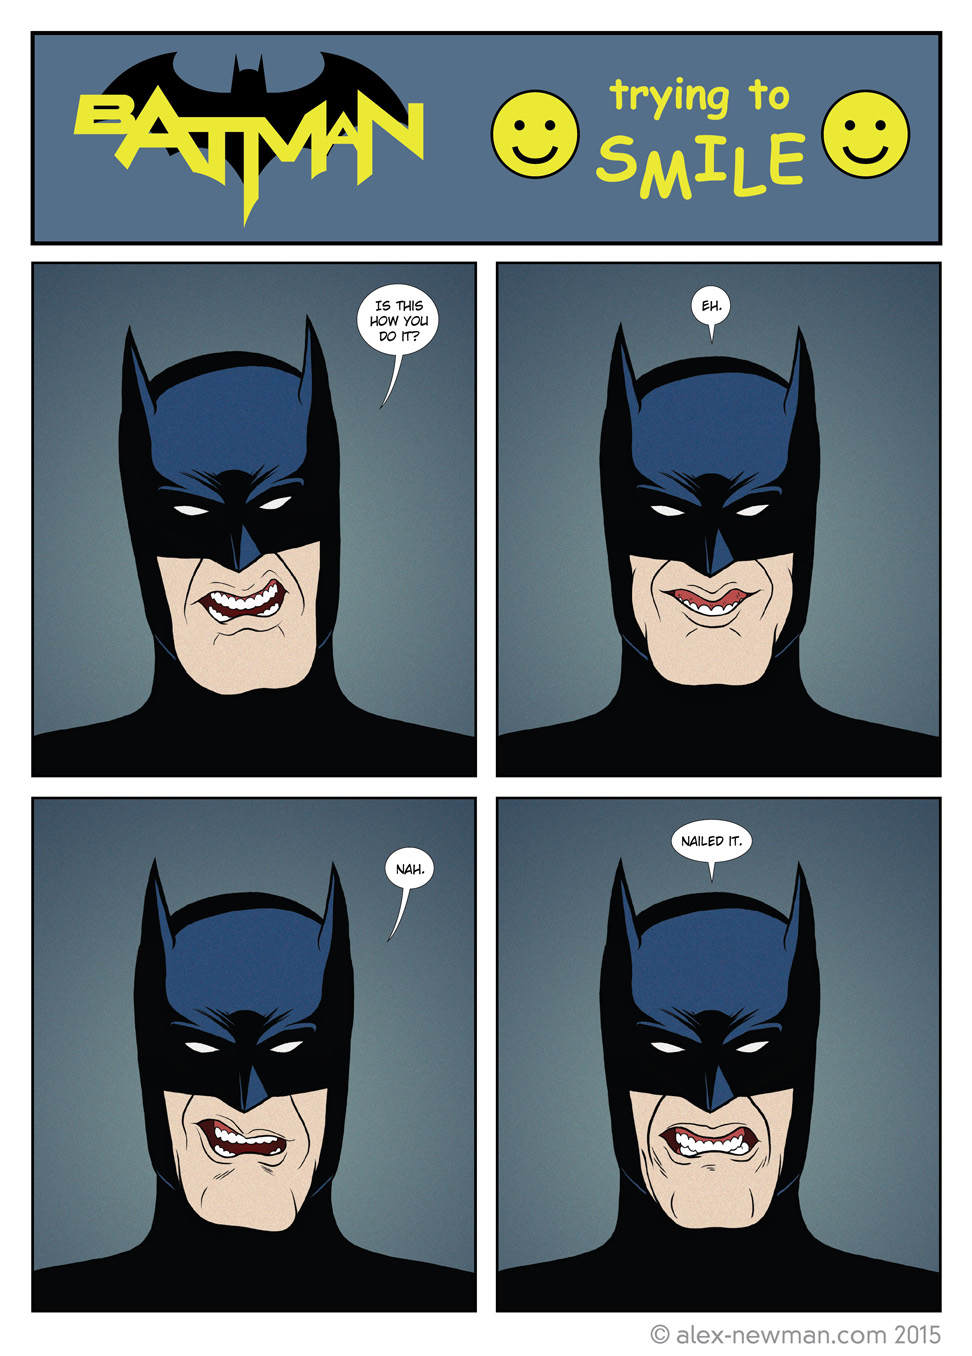 Batman Tries to Smile_WEB.jpg